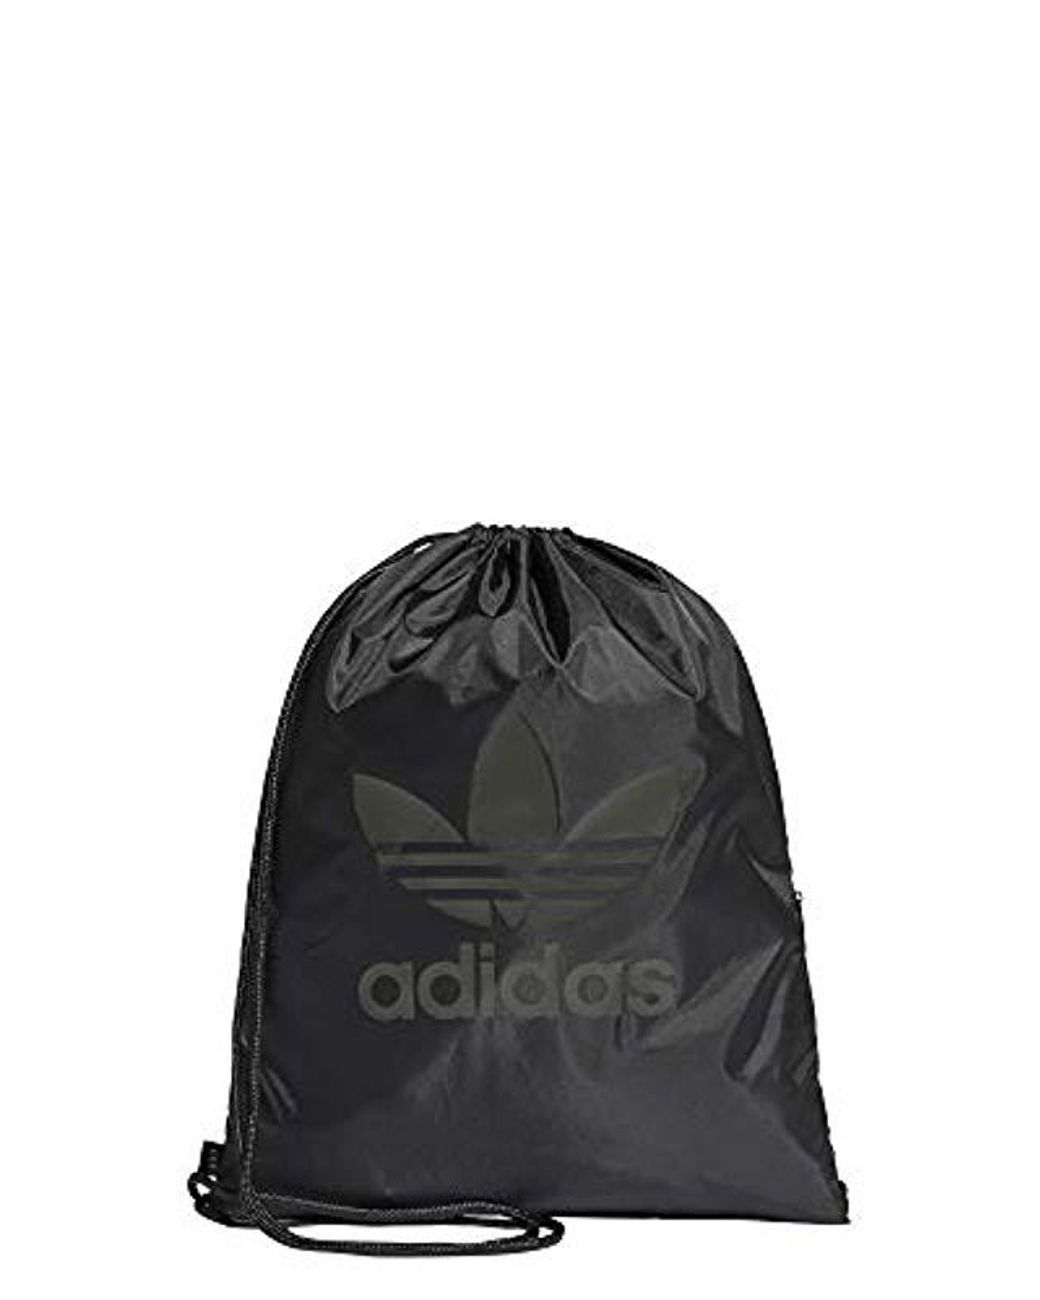 adidas Unisex Gymsack Trefoil Backpack in Black for Men - Lyst